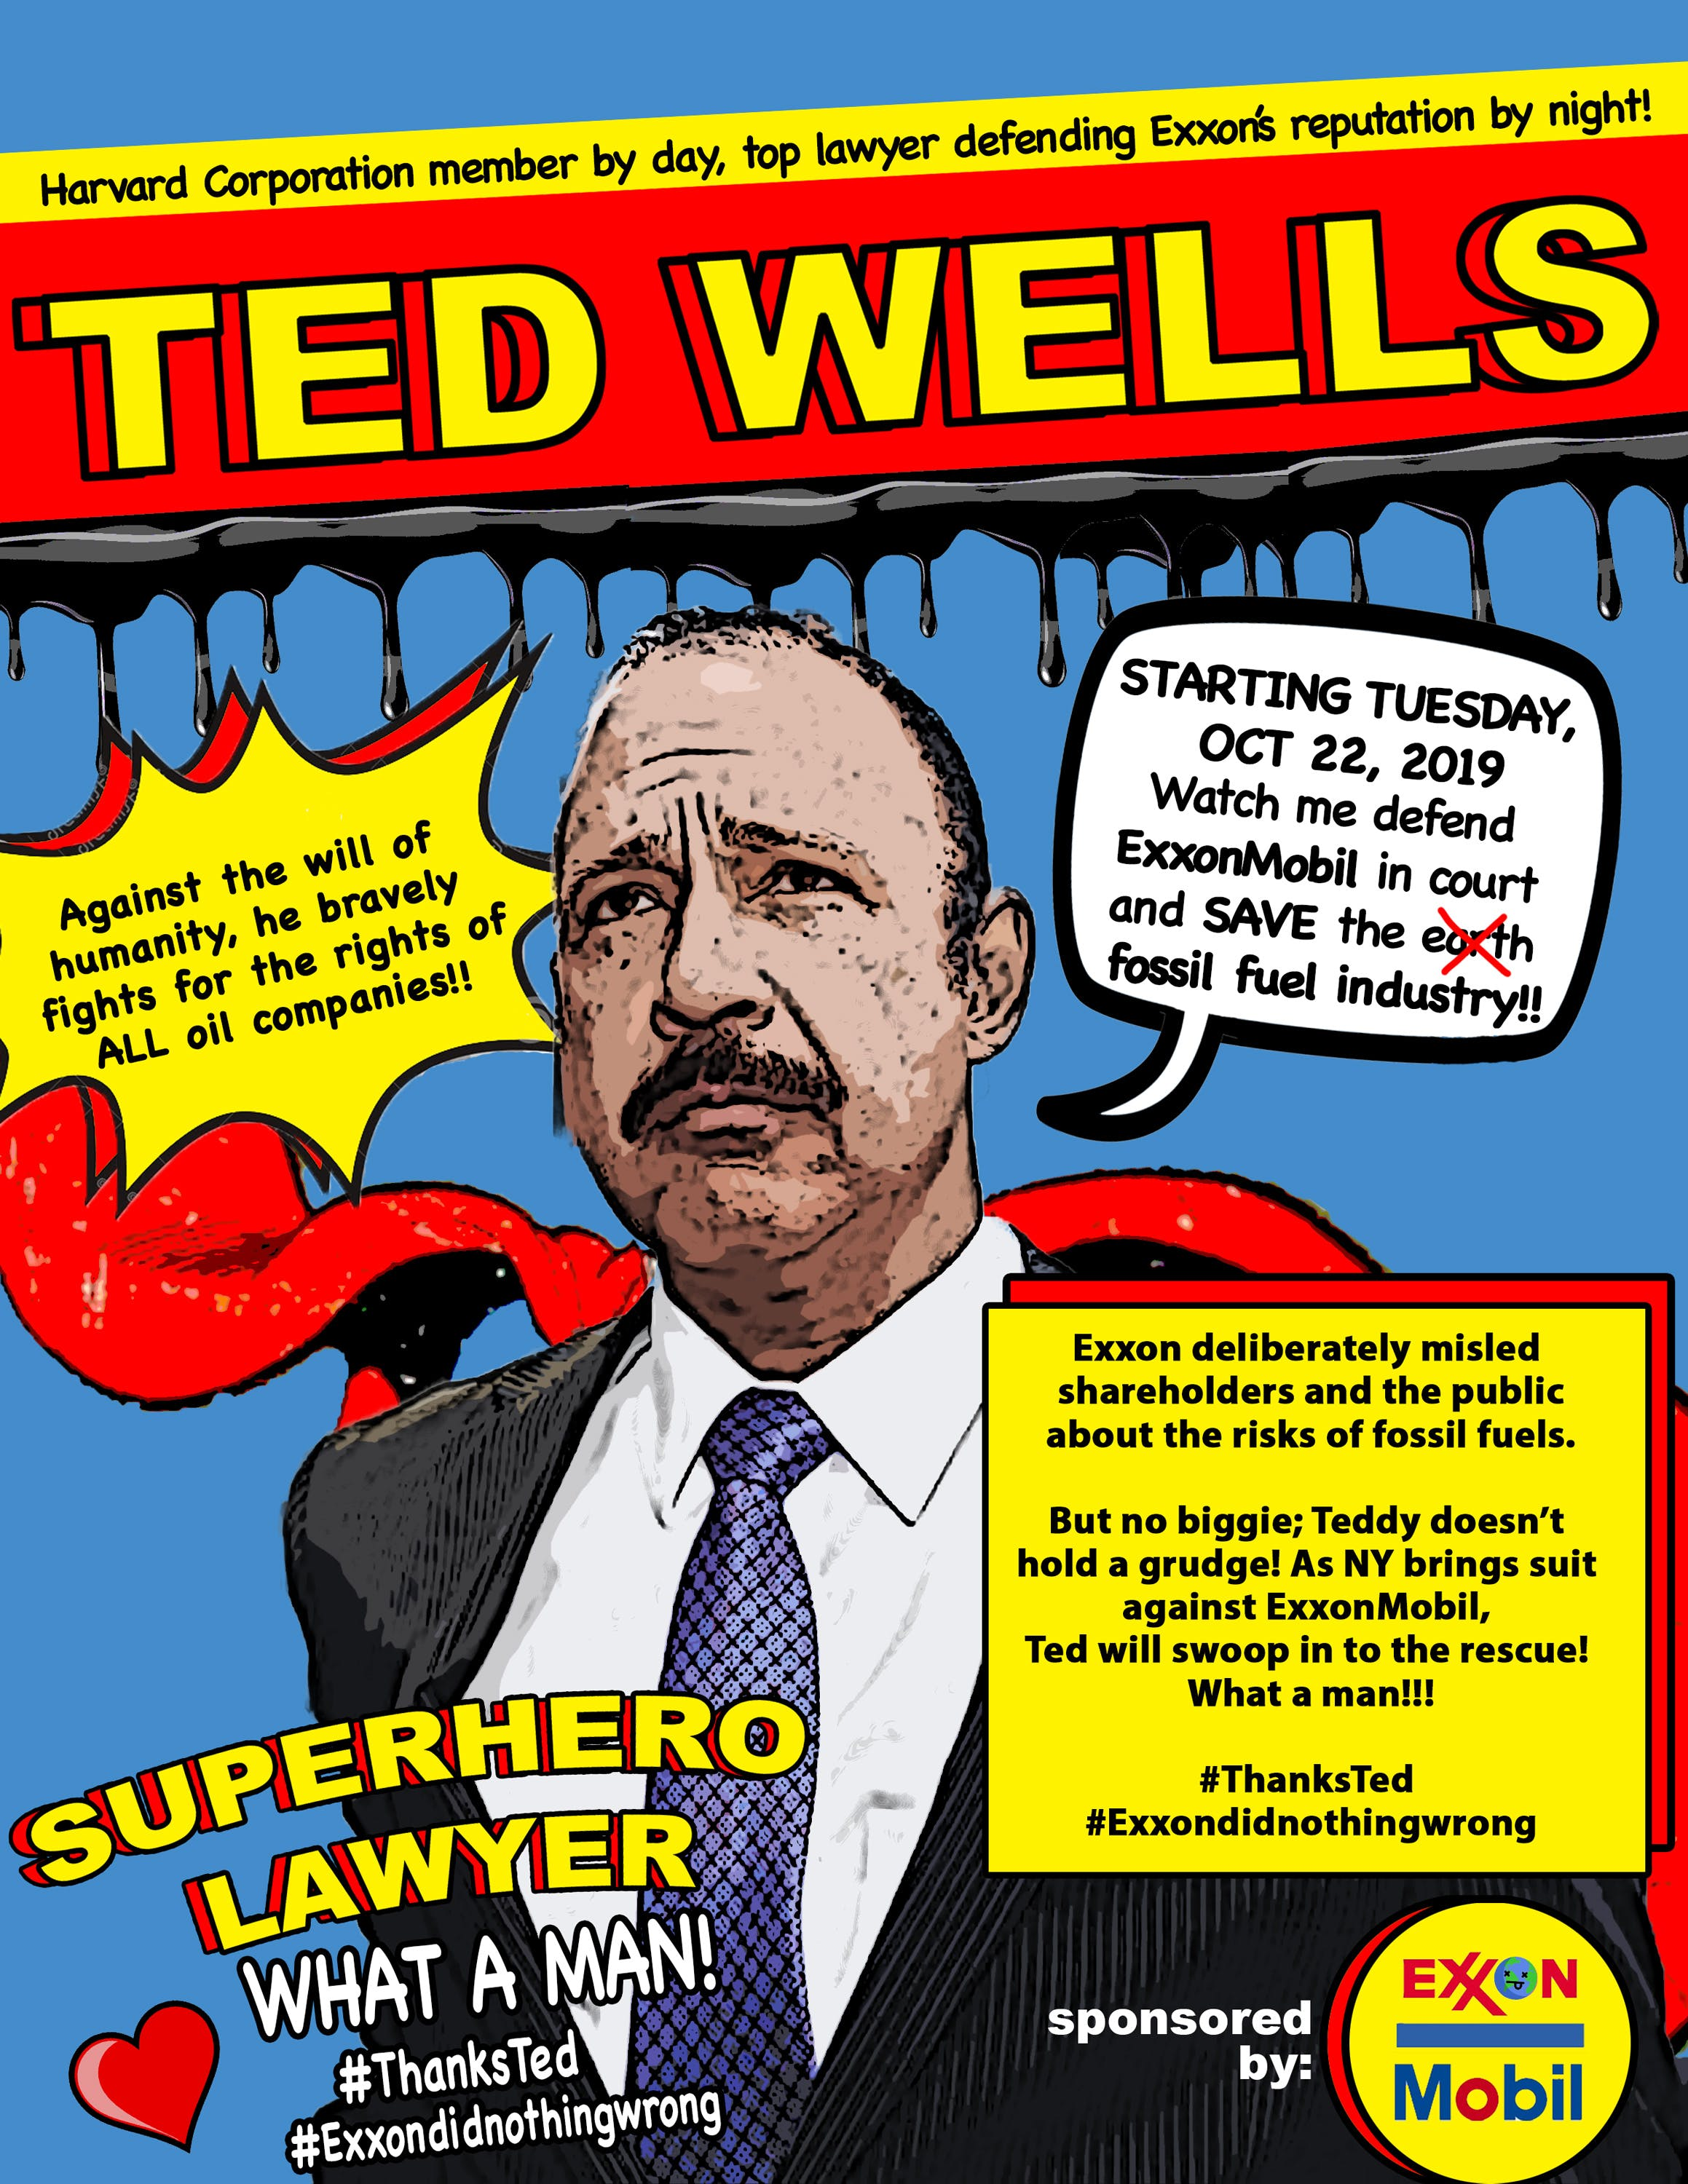 Ted-Wells_Divest2update-1576190553